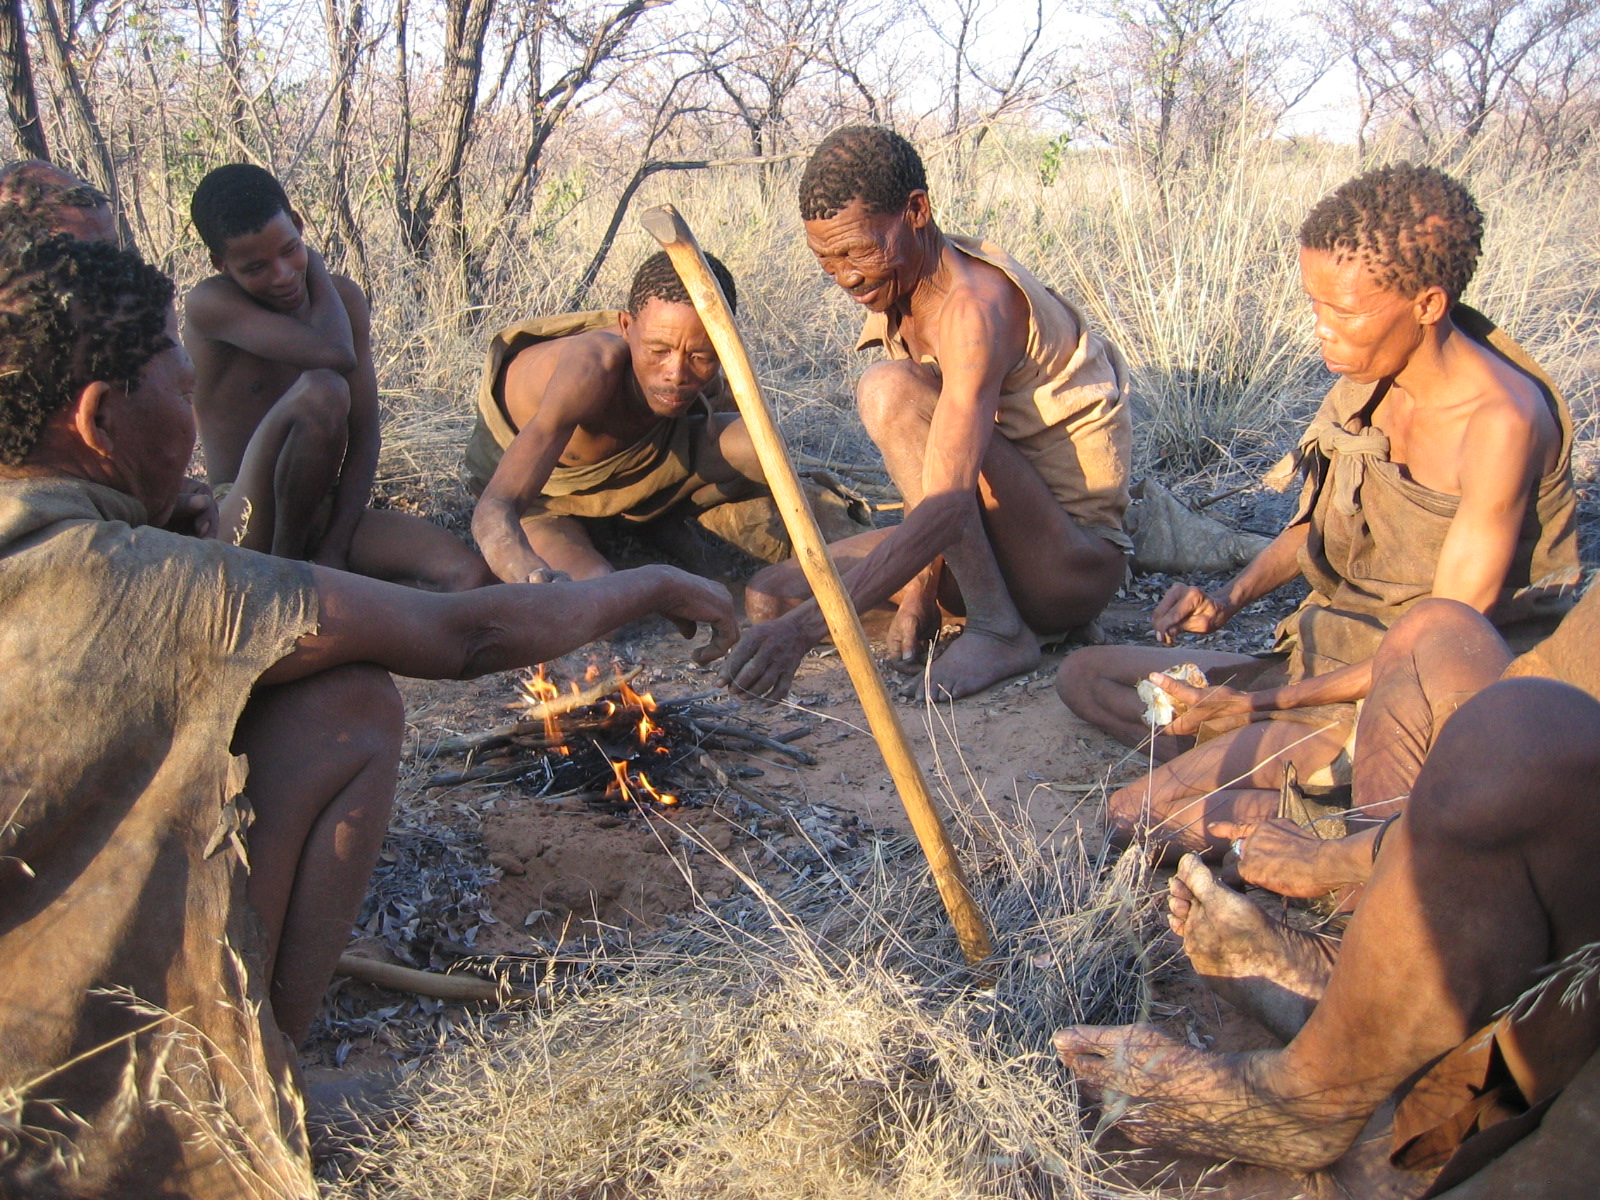 the kung bushmen of the kalahari The kung bushmen of the kalahari desert the kung bushmen of botswana inhabit the semi-arid northwest region of the kalahari desert their average annual rainfall is poor, only six to nine inches a year.